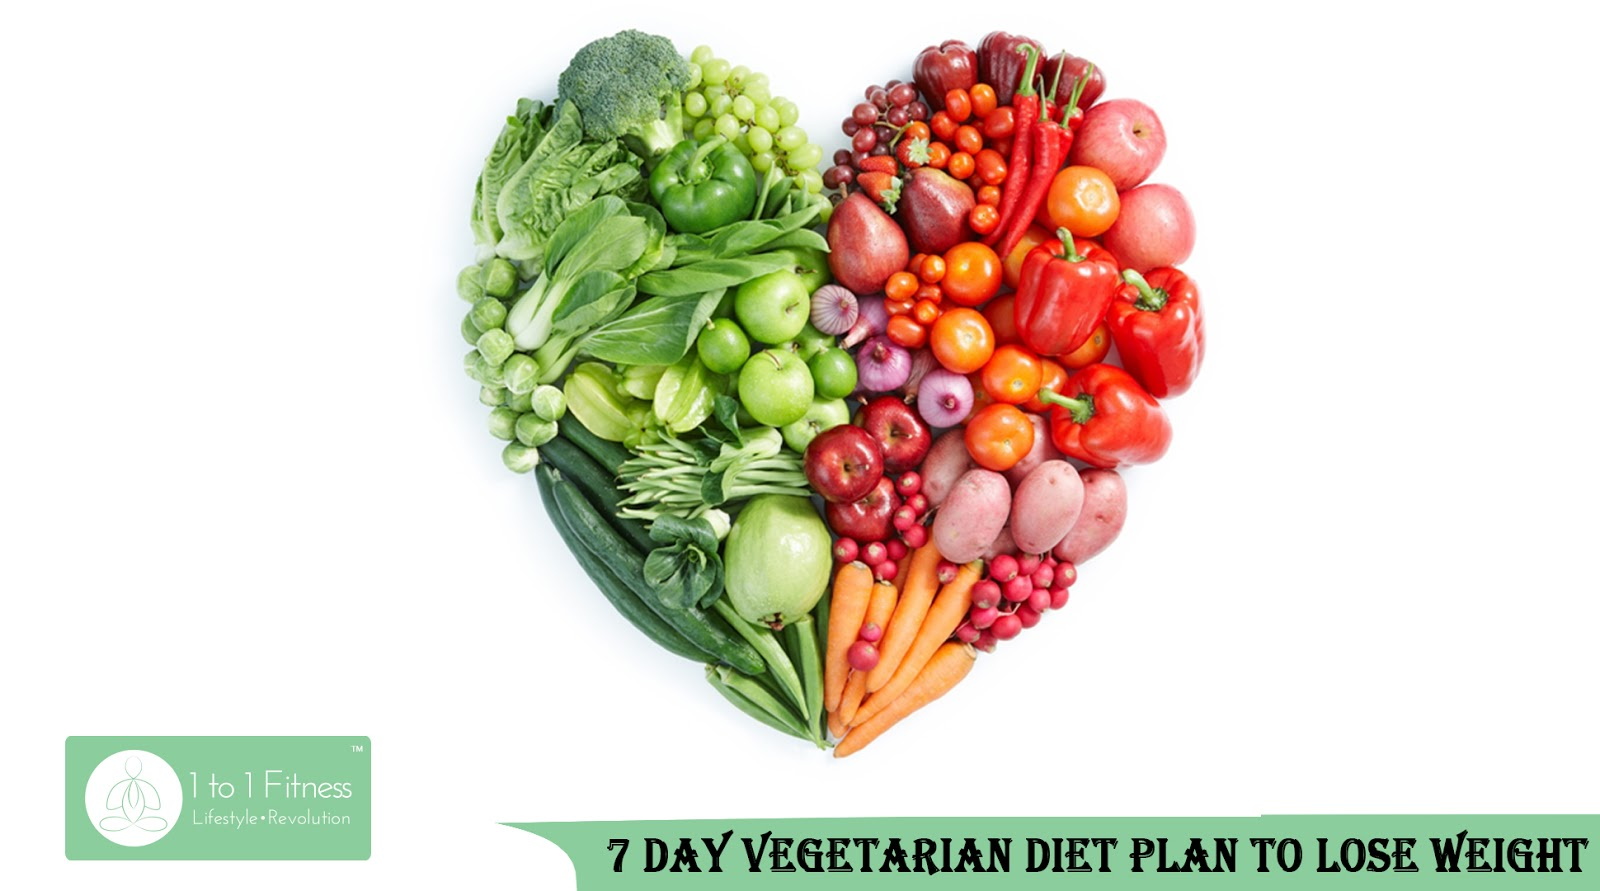 7 healthy diet plans to reduce weight naturally with 1to1 fitness 7 day vegetarian diet plan to lose weight nvjuhfo Gallery